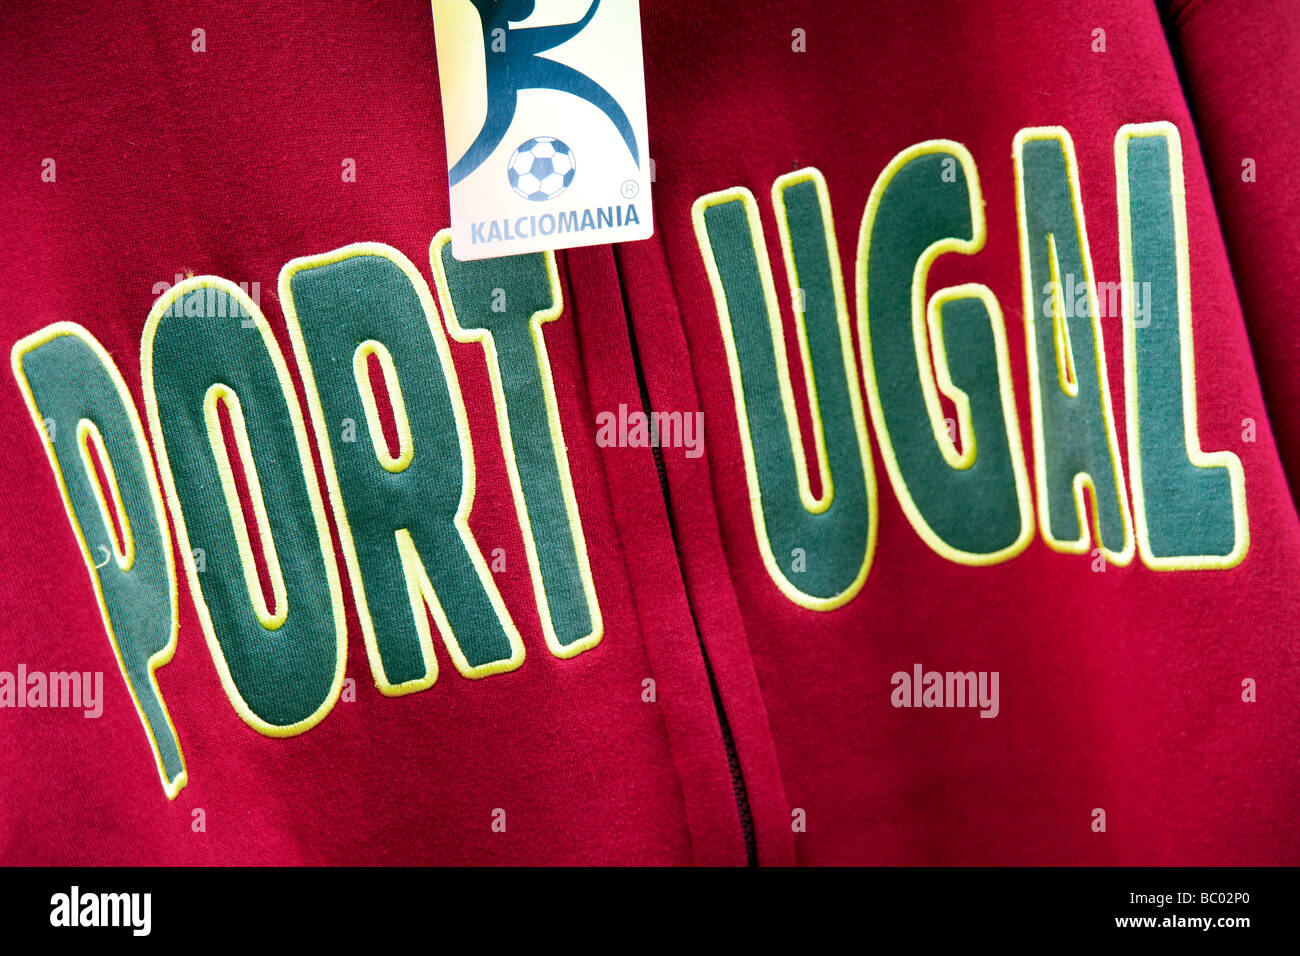 Portugal football tracksuit top - Stock Image